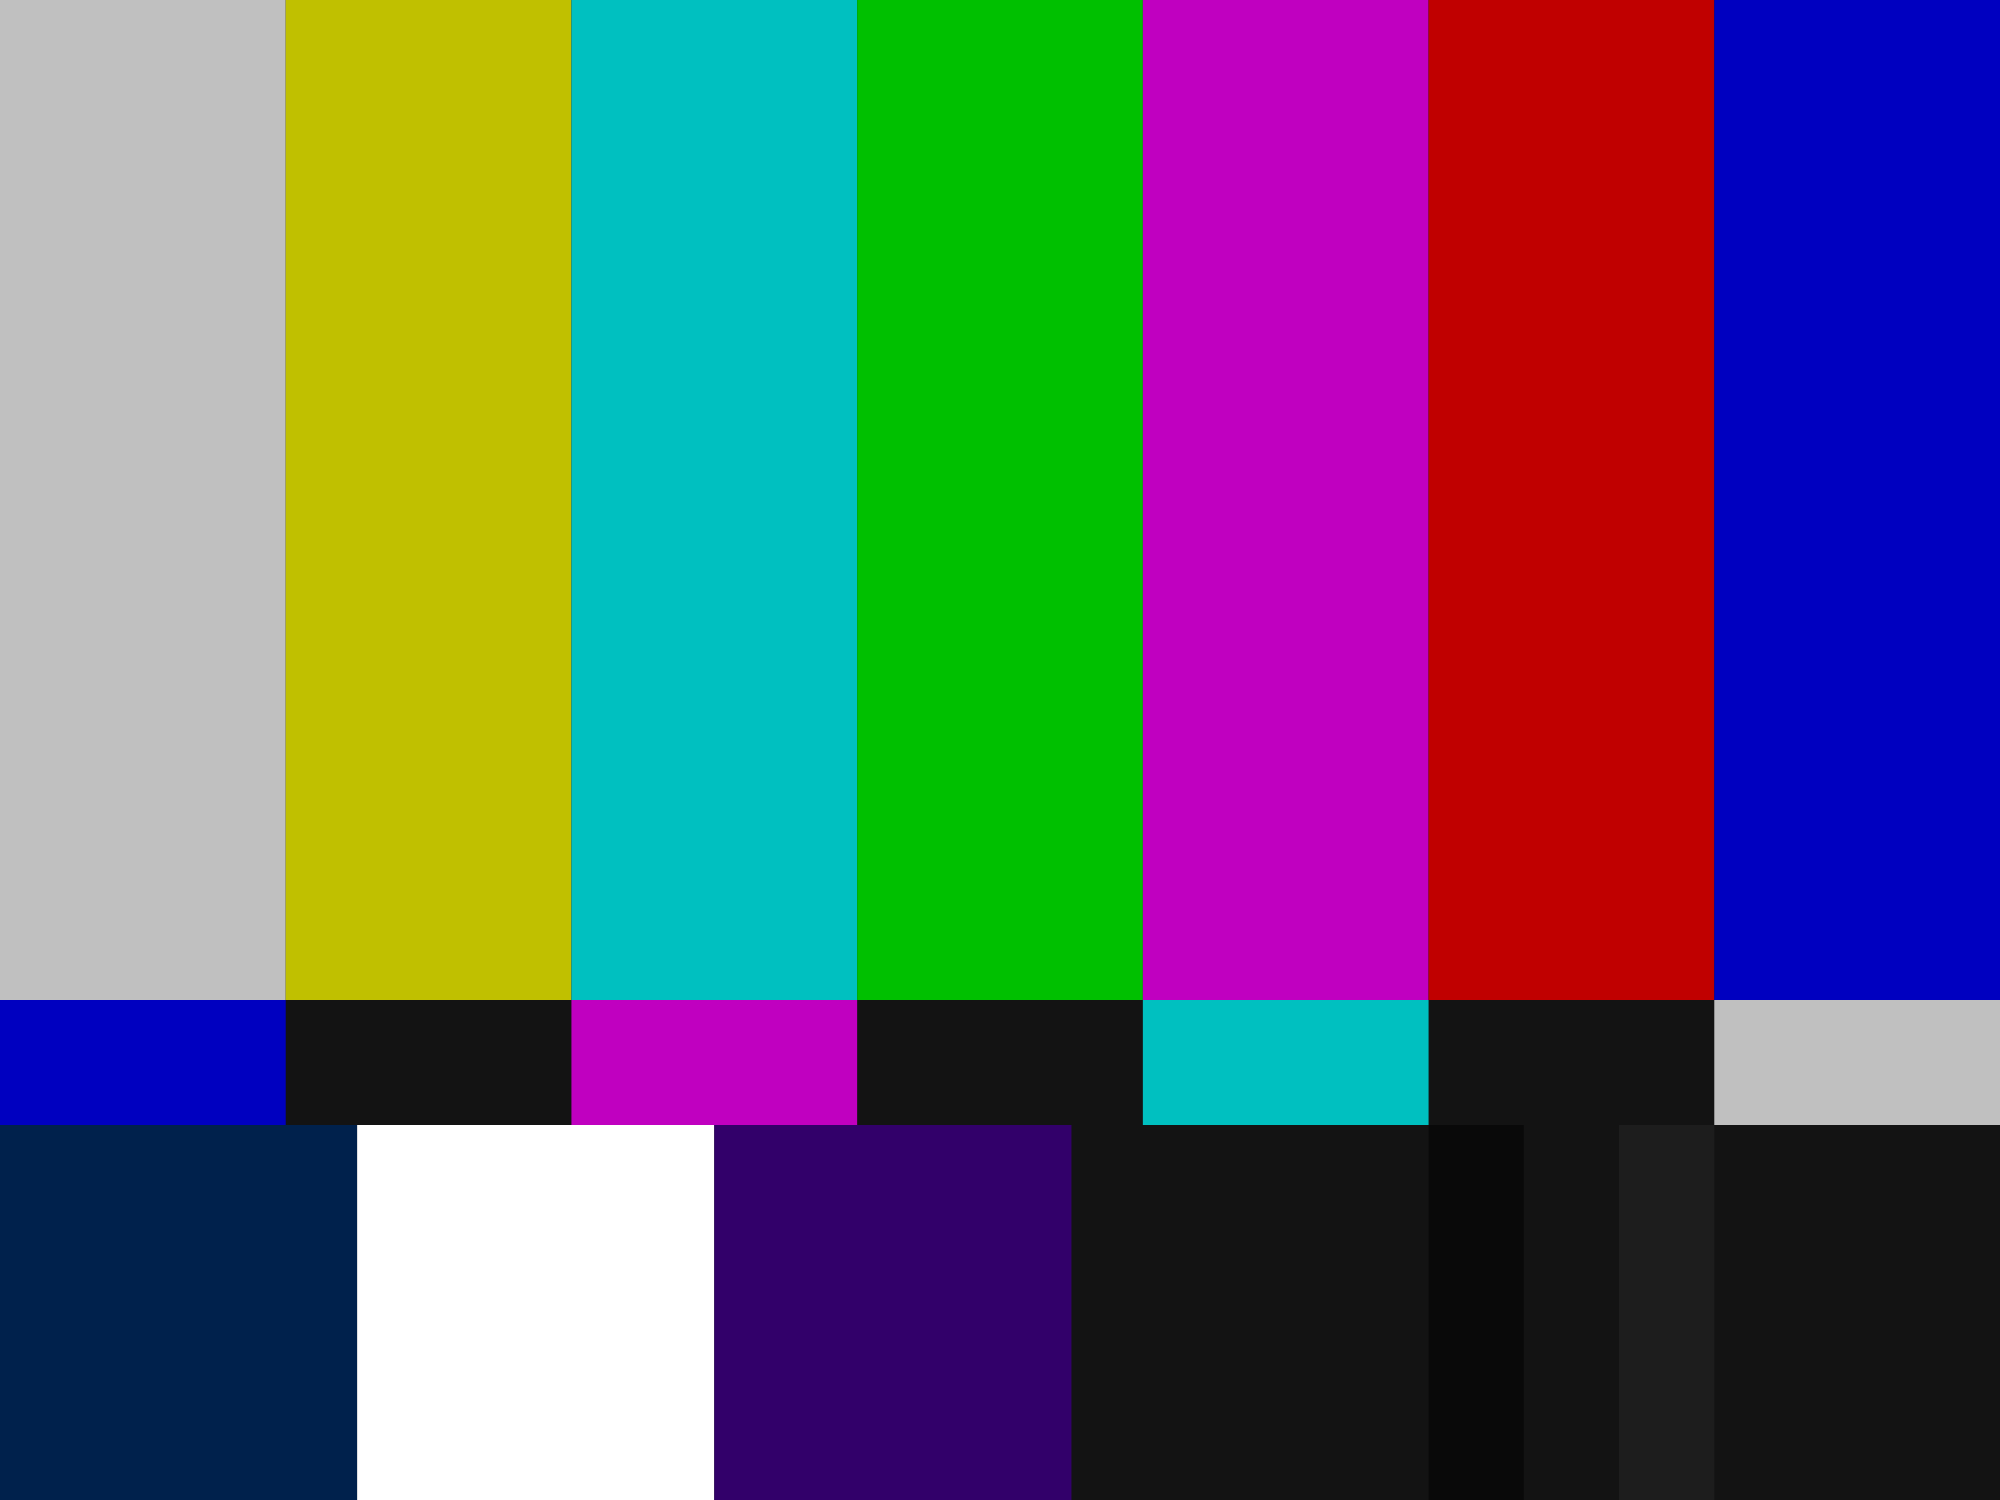 NTSC SMPTE Bars. Source: Wikimedia Commons